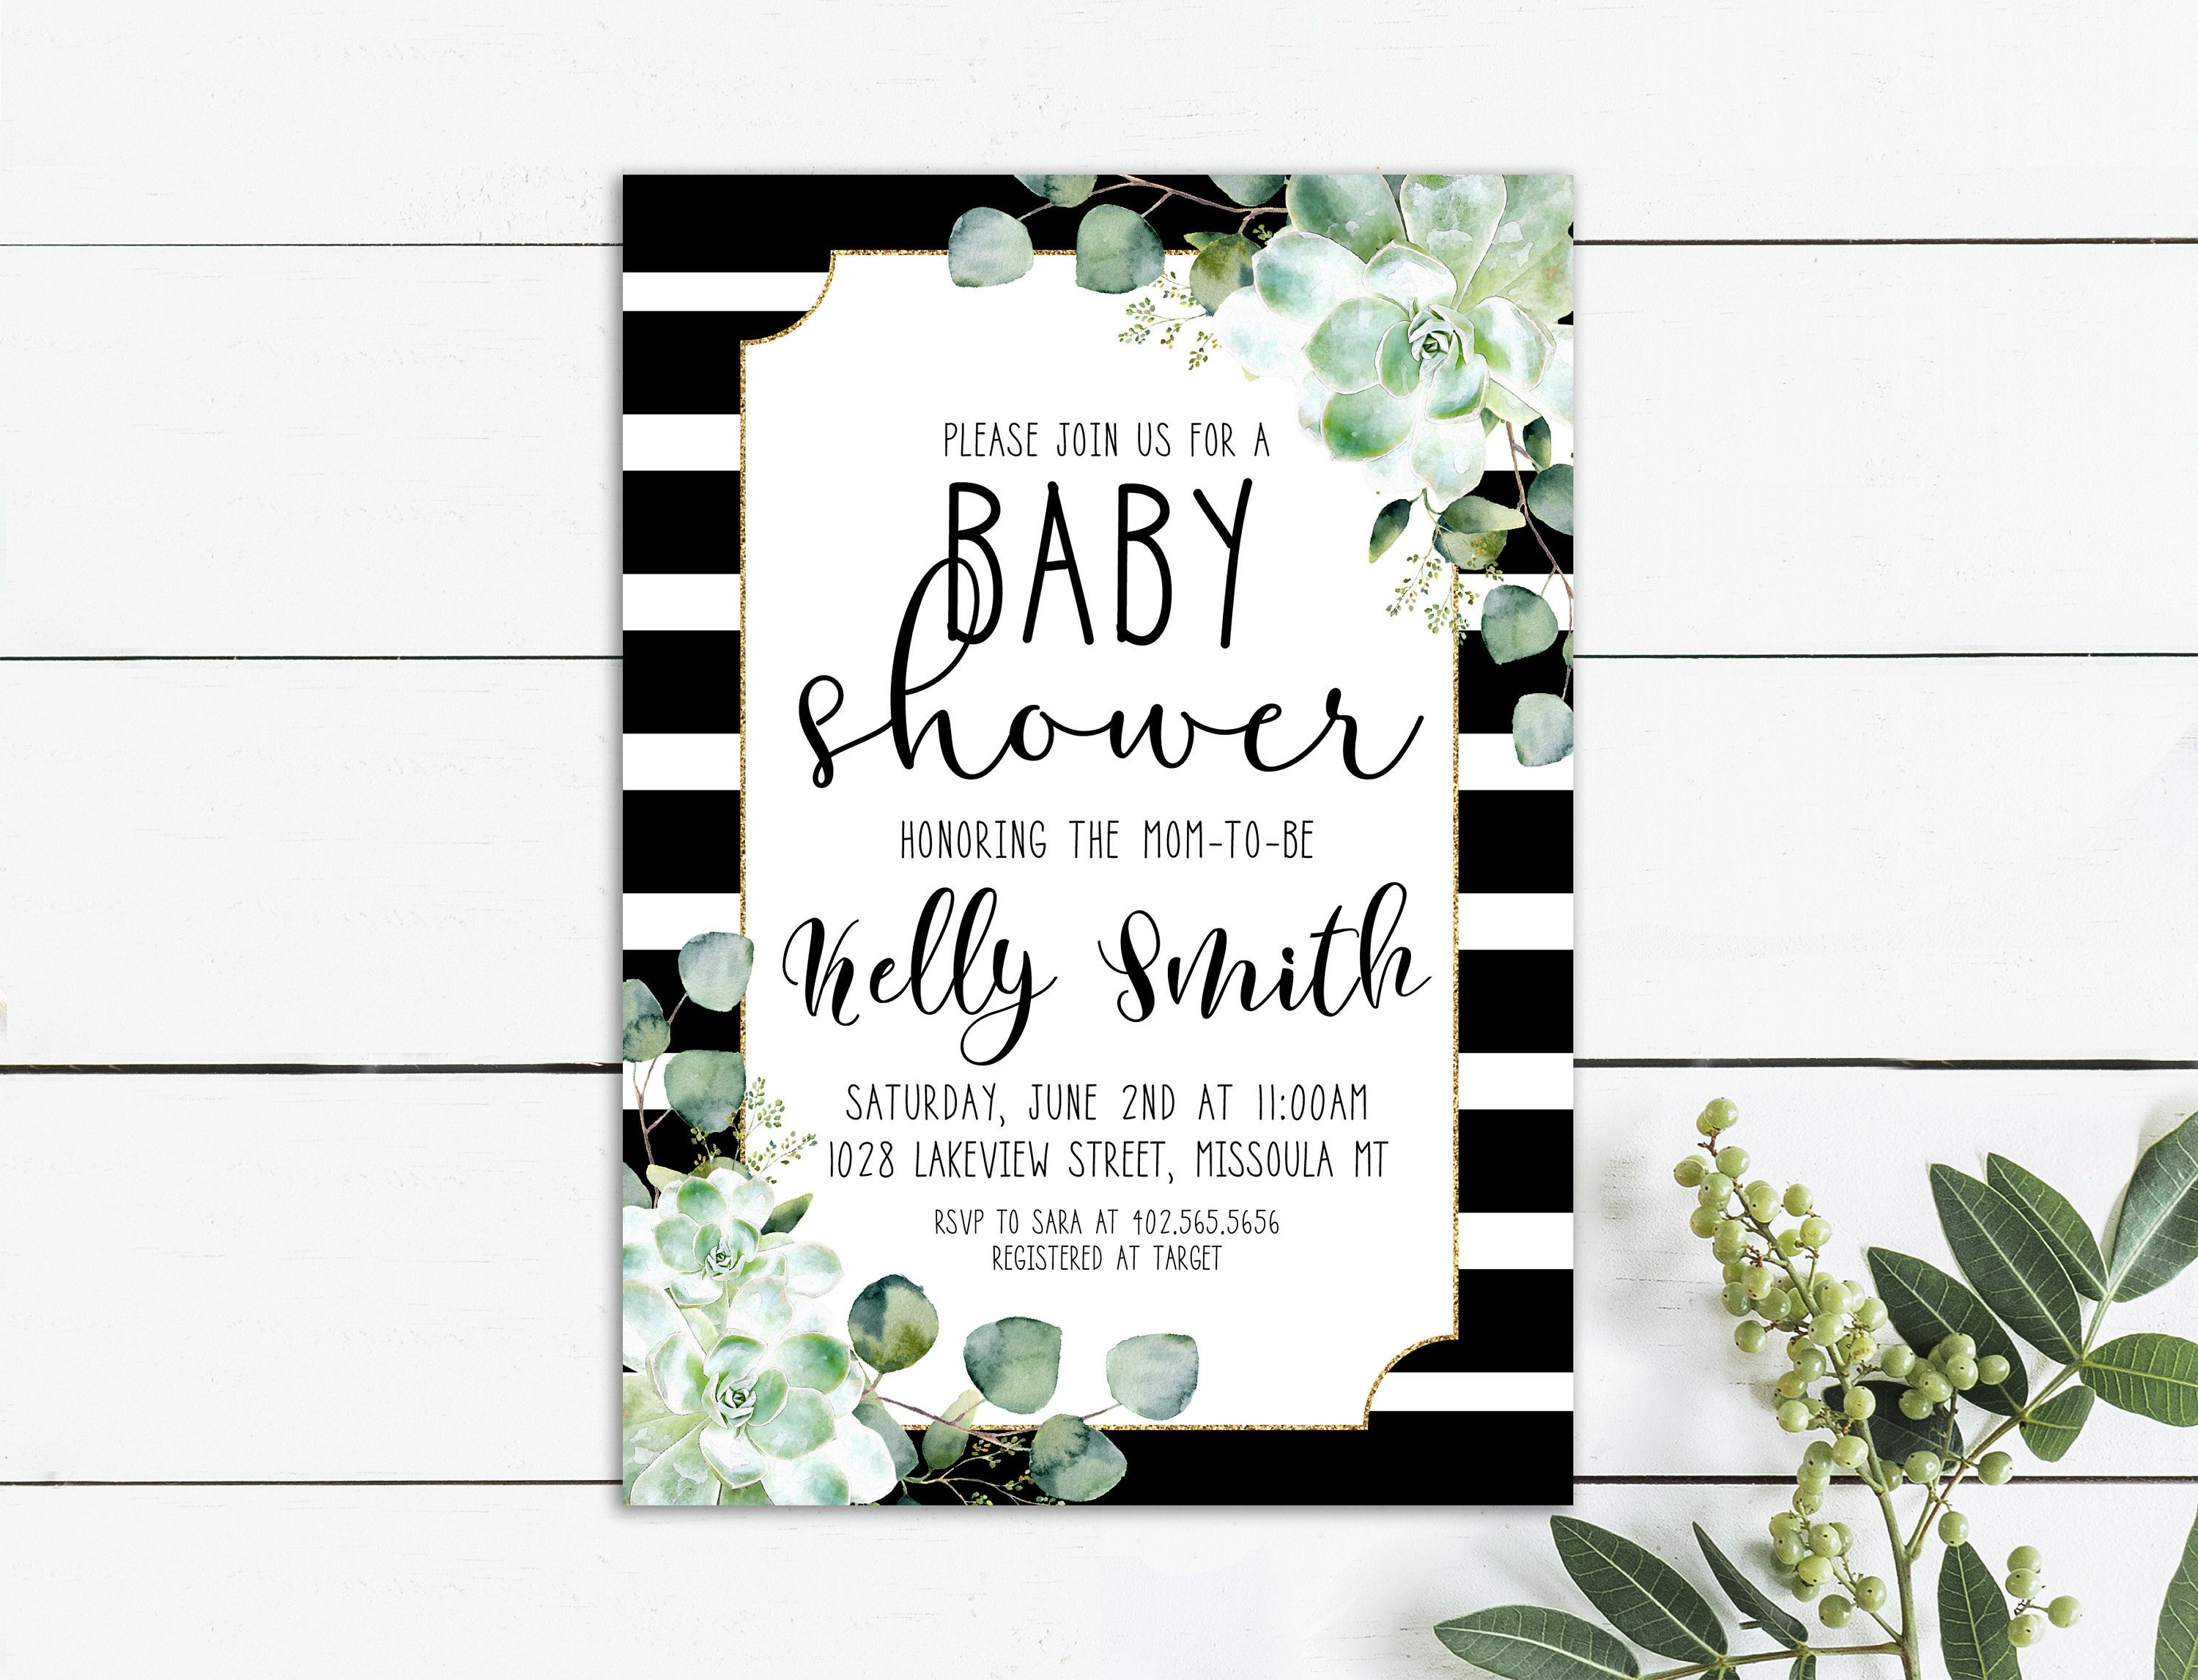 shower only diy cards strikingly creative bunny gift card ideas invitations baby